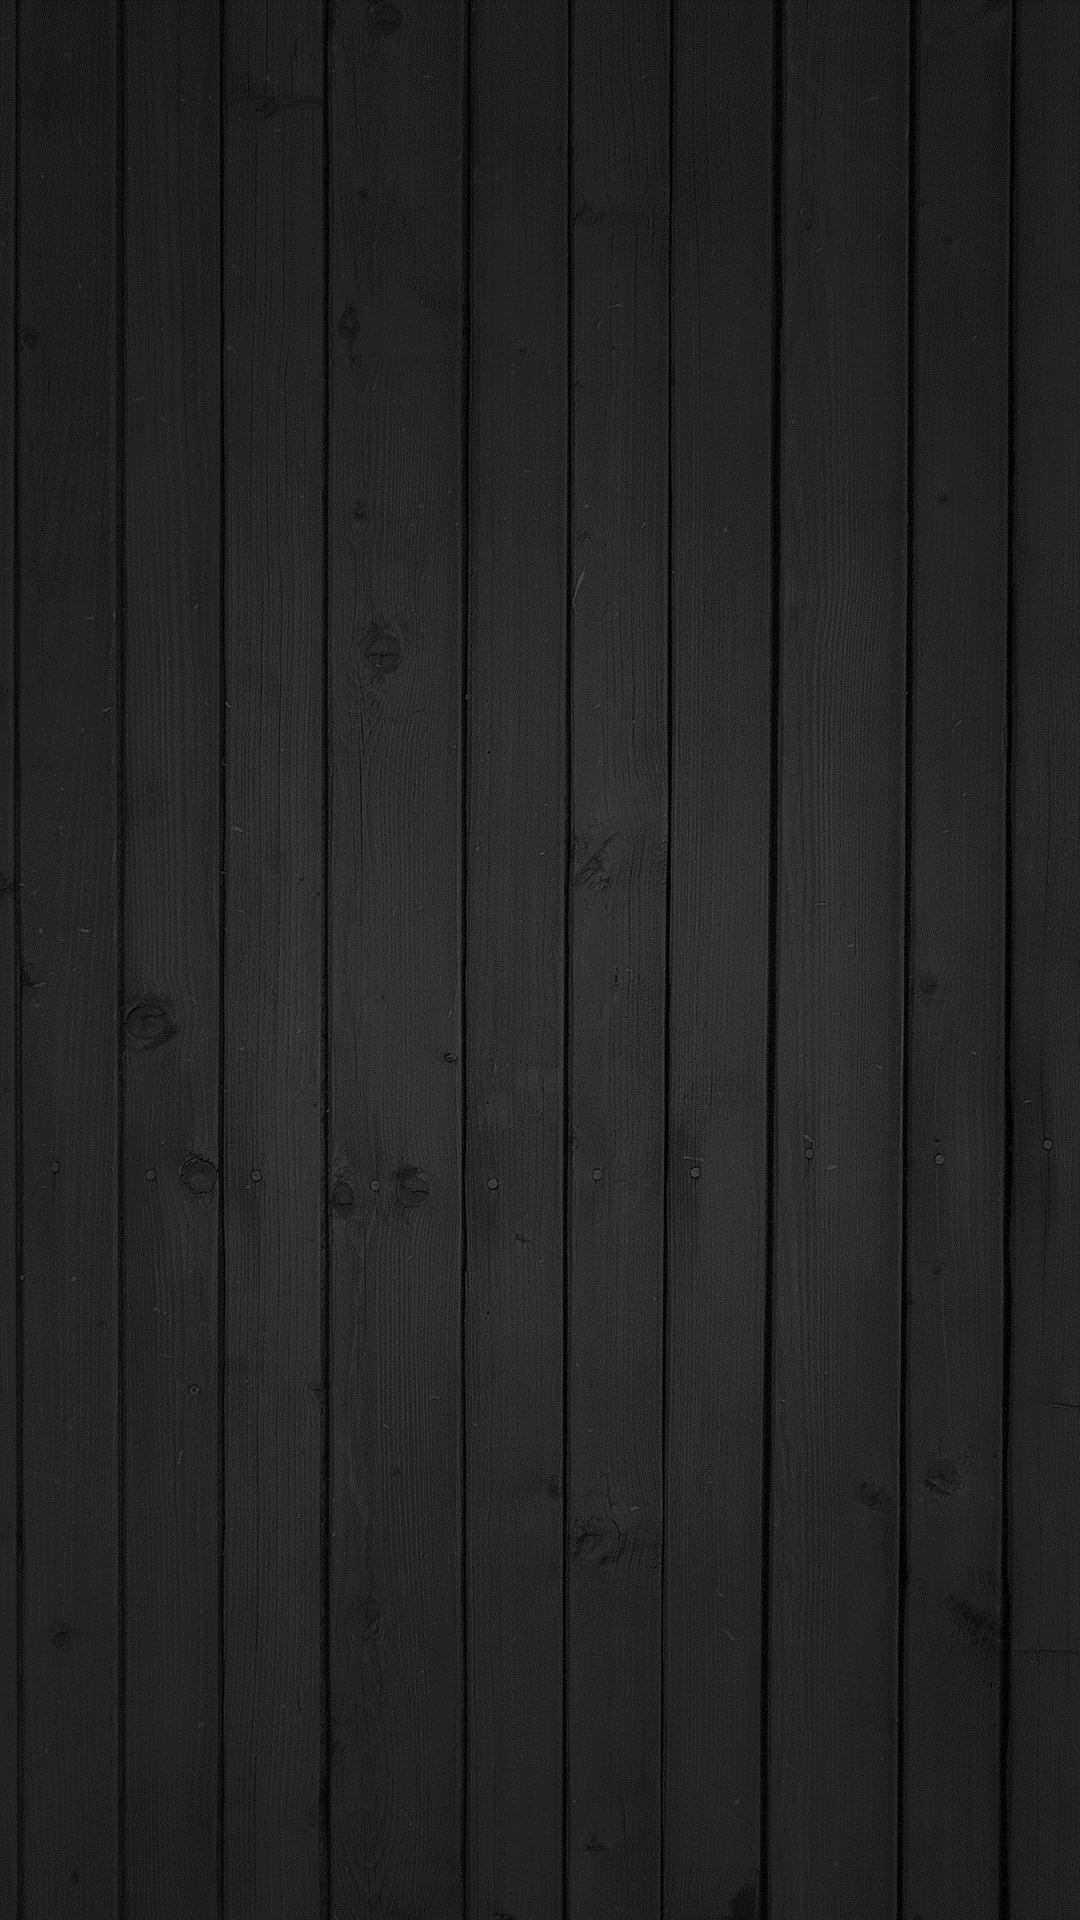 1080x1920 black wood texture android wallpaper